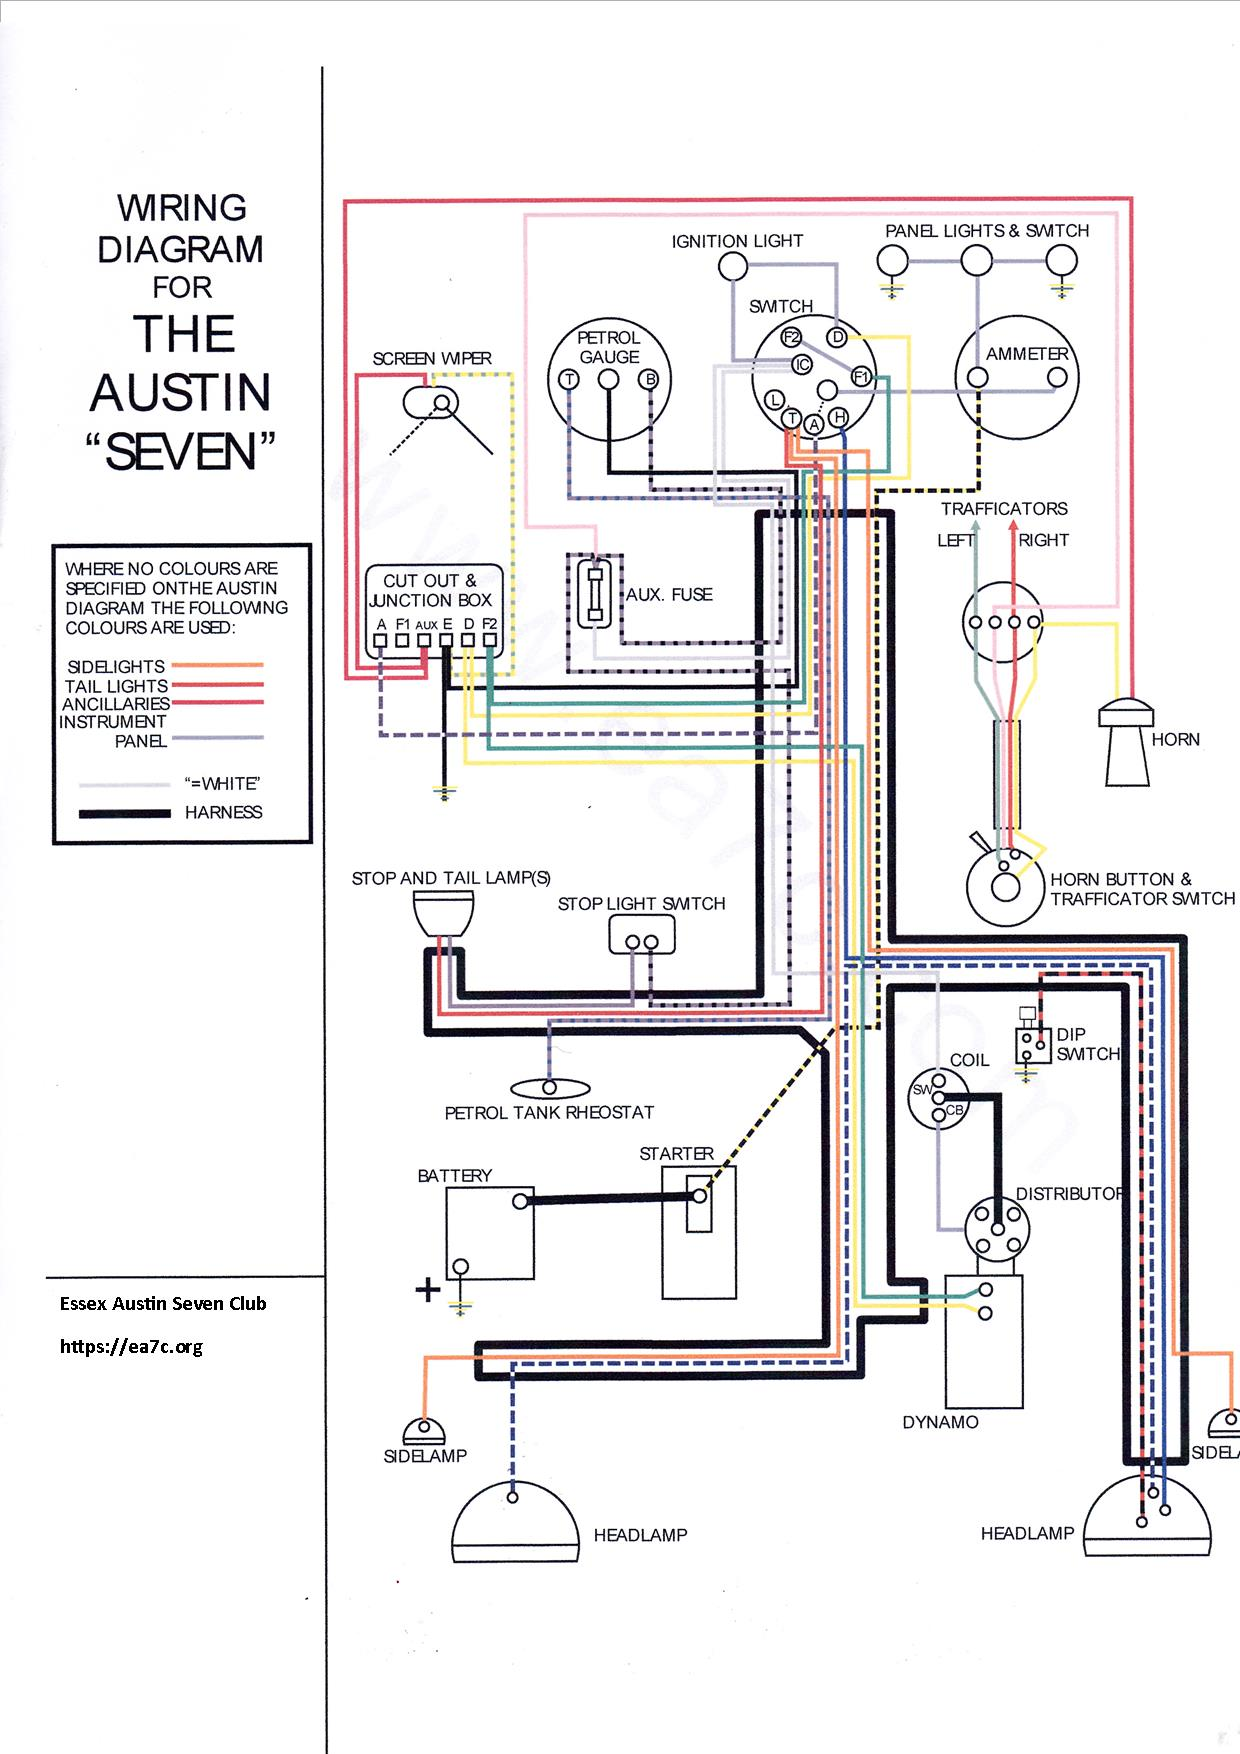 Audio Wiring Plans For Nightclub Fms Diagram Mct006g2 B Trusted Diagrams Essex Online Circuit U2022 Home